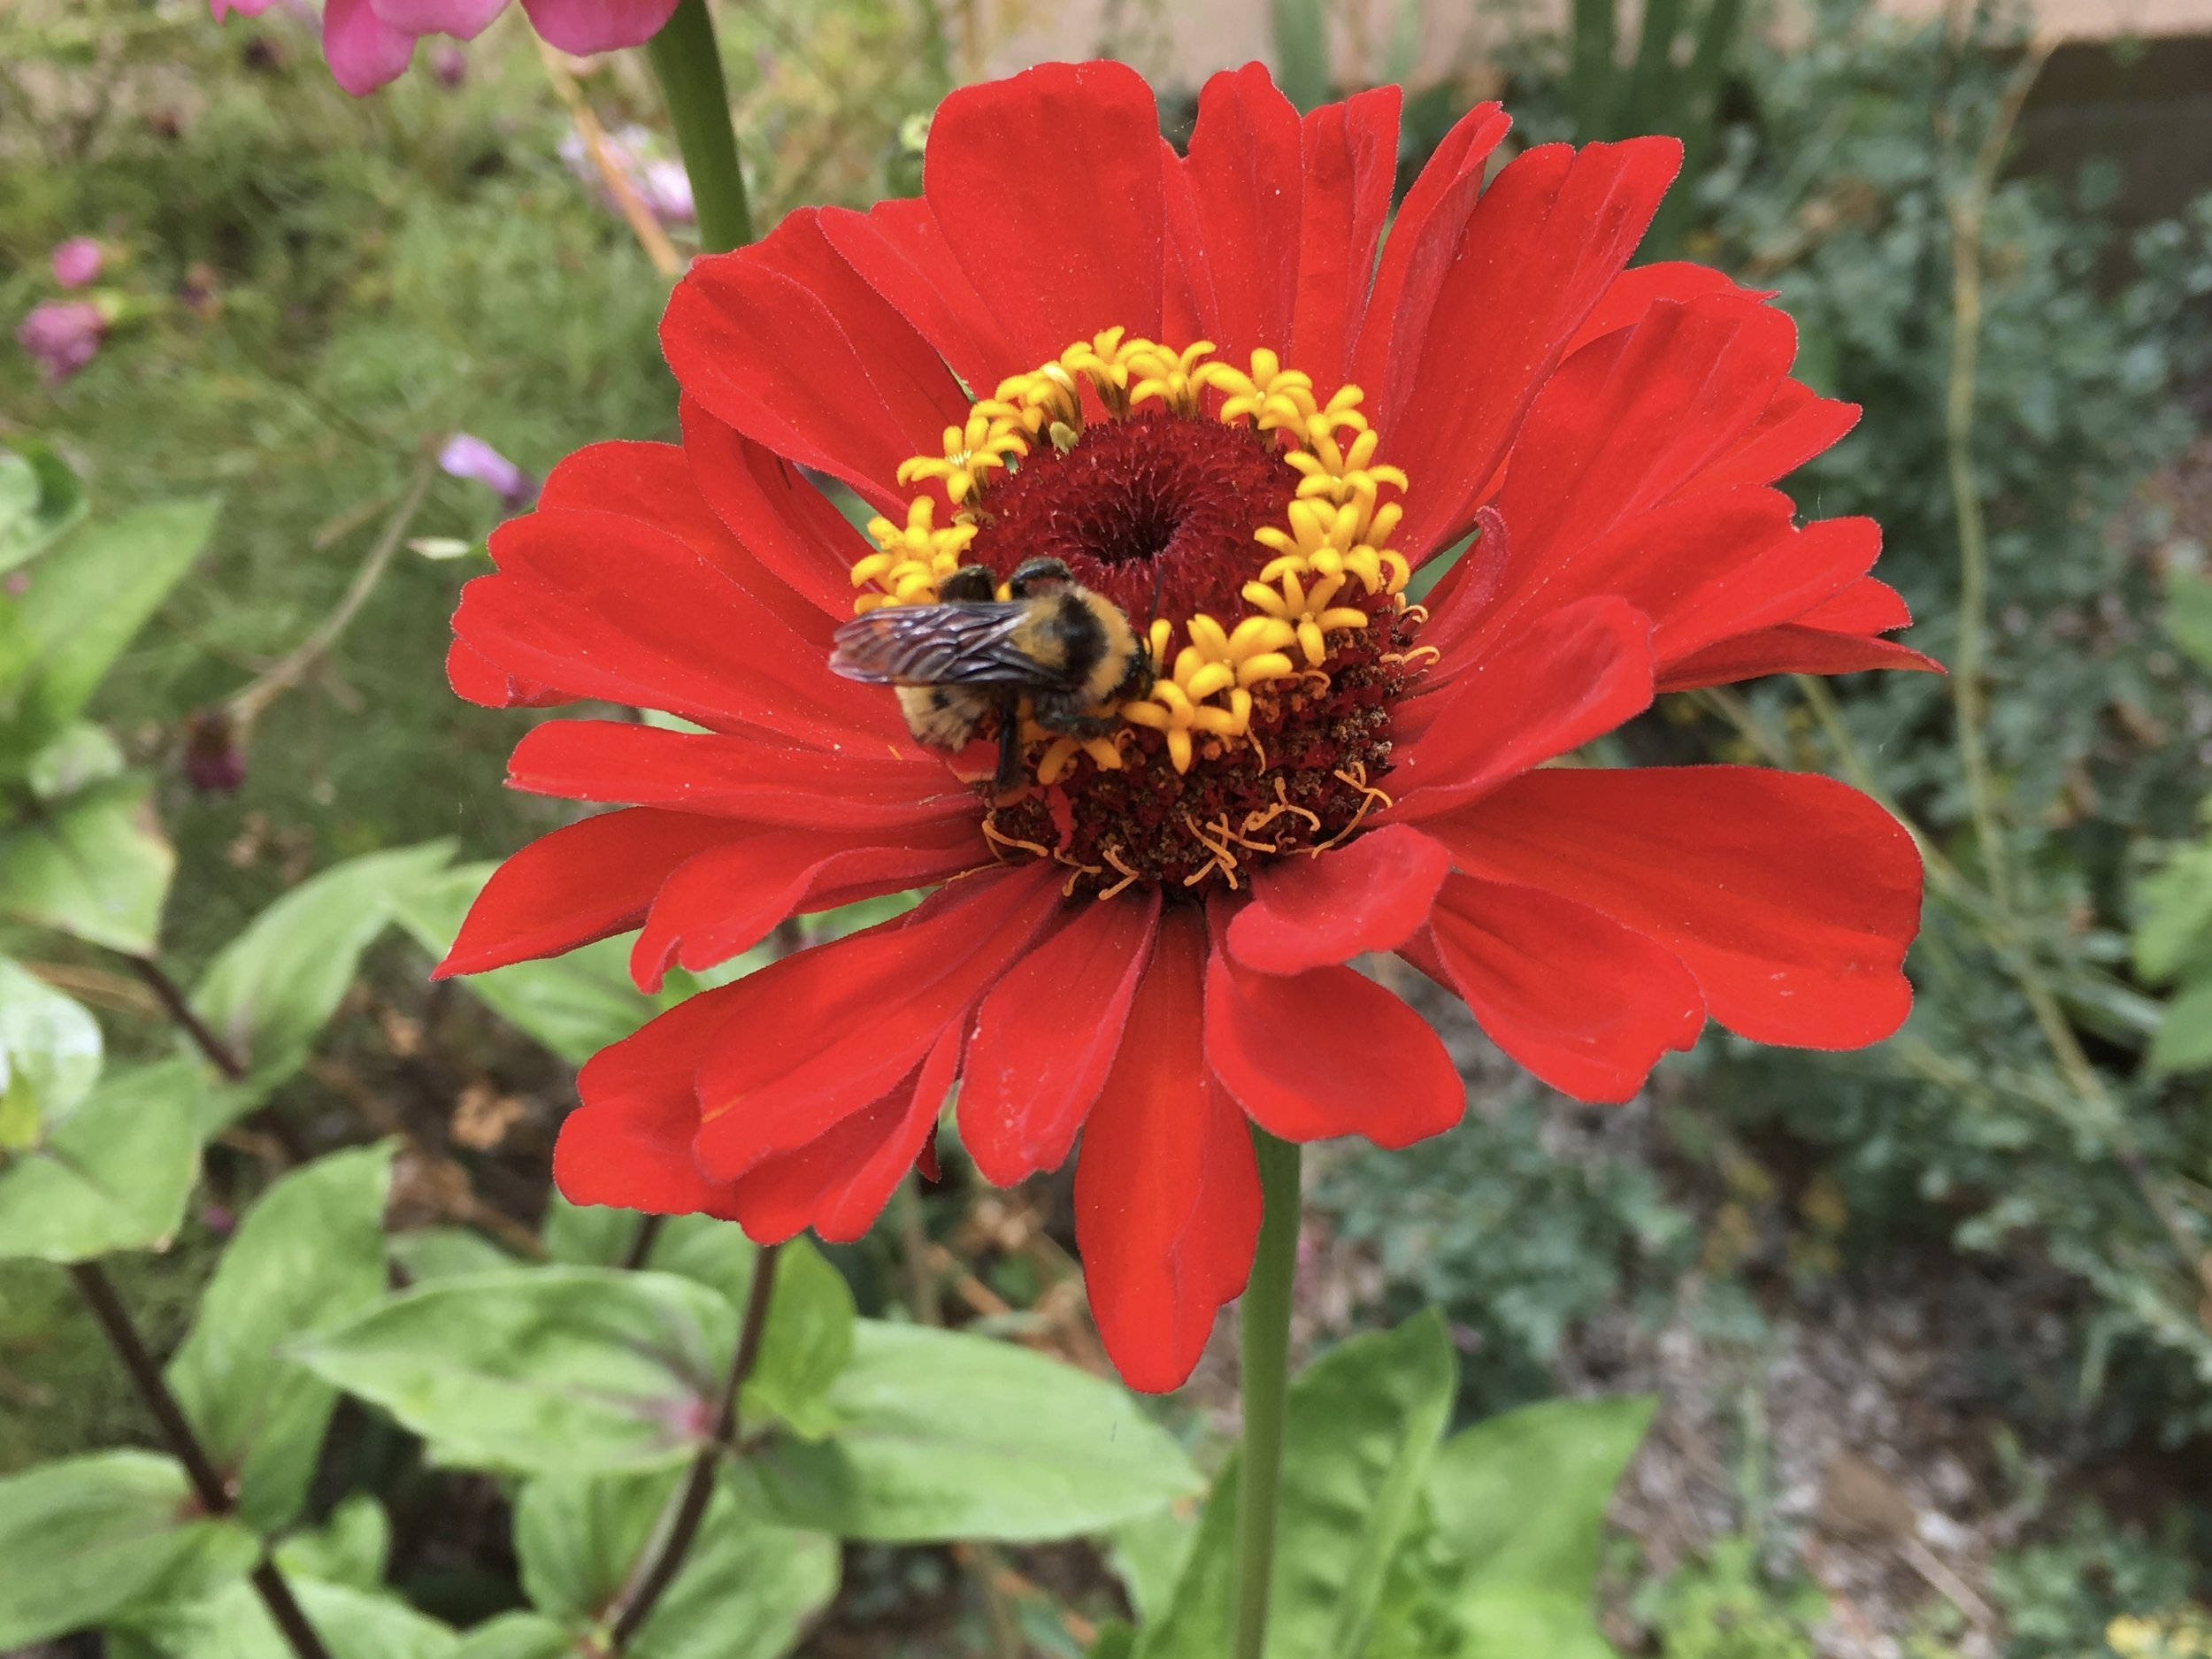 Zinnia and a bumble bee. The bumble bees often sleep on the zinnias.